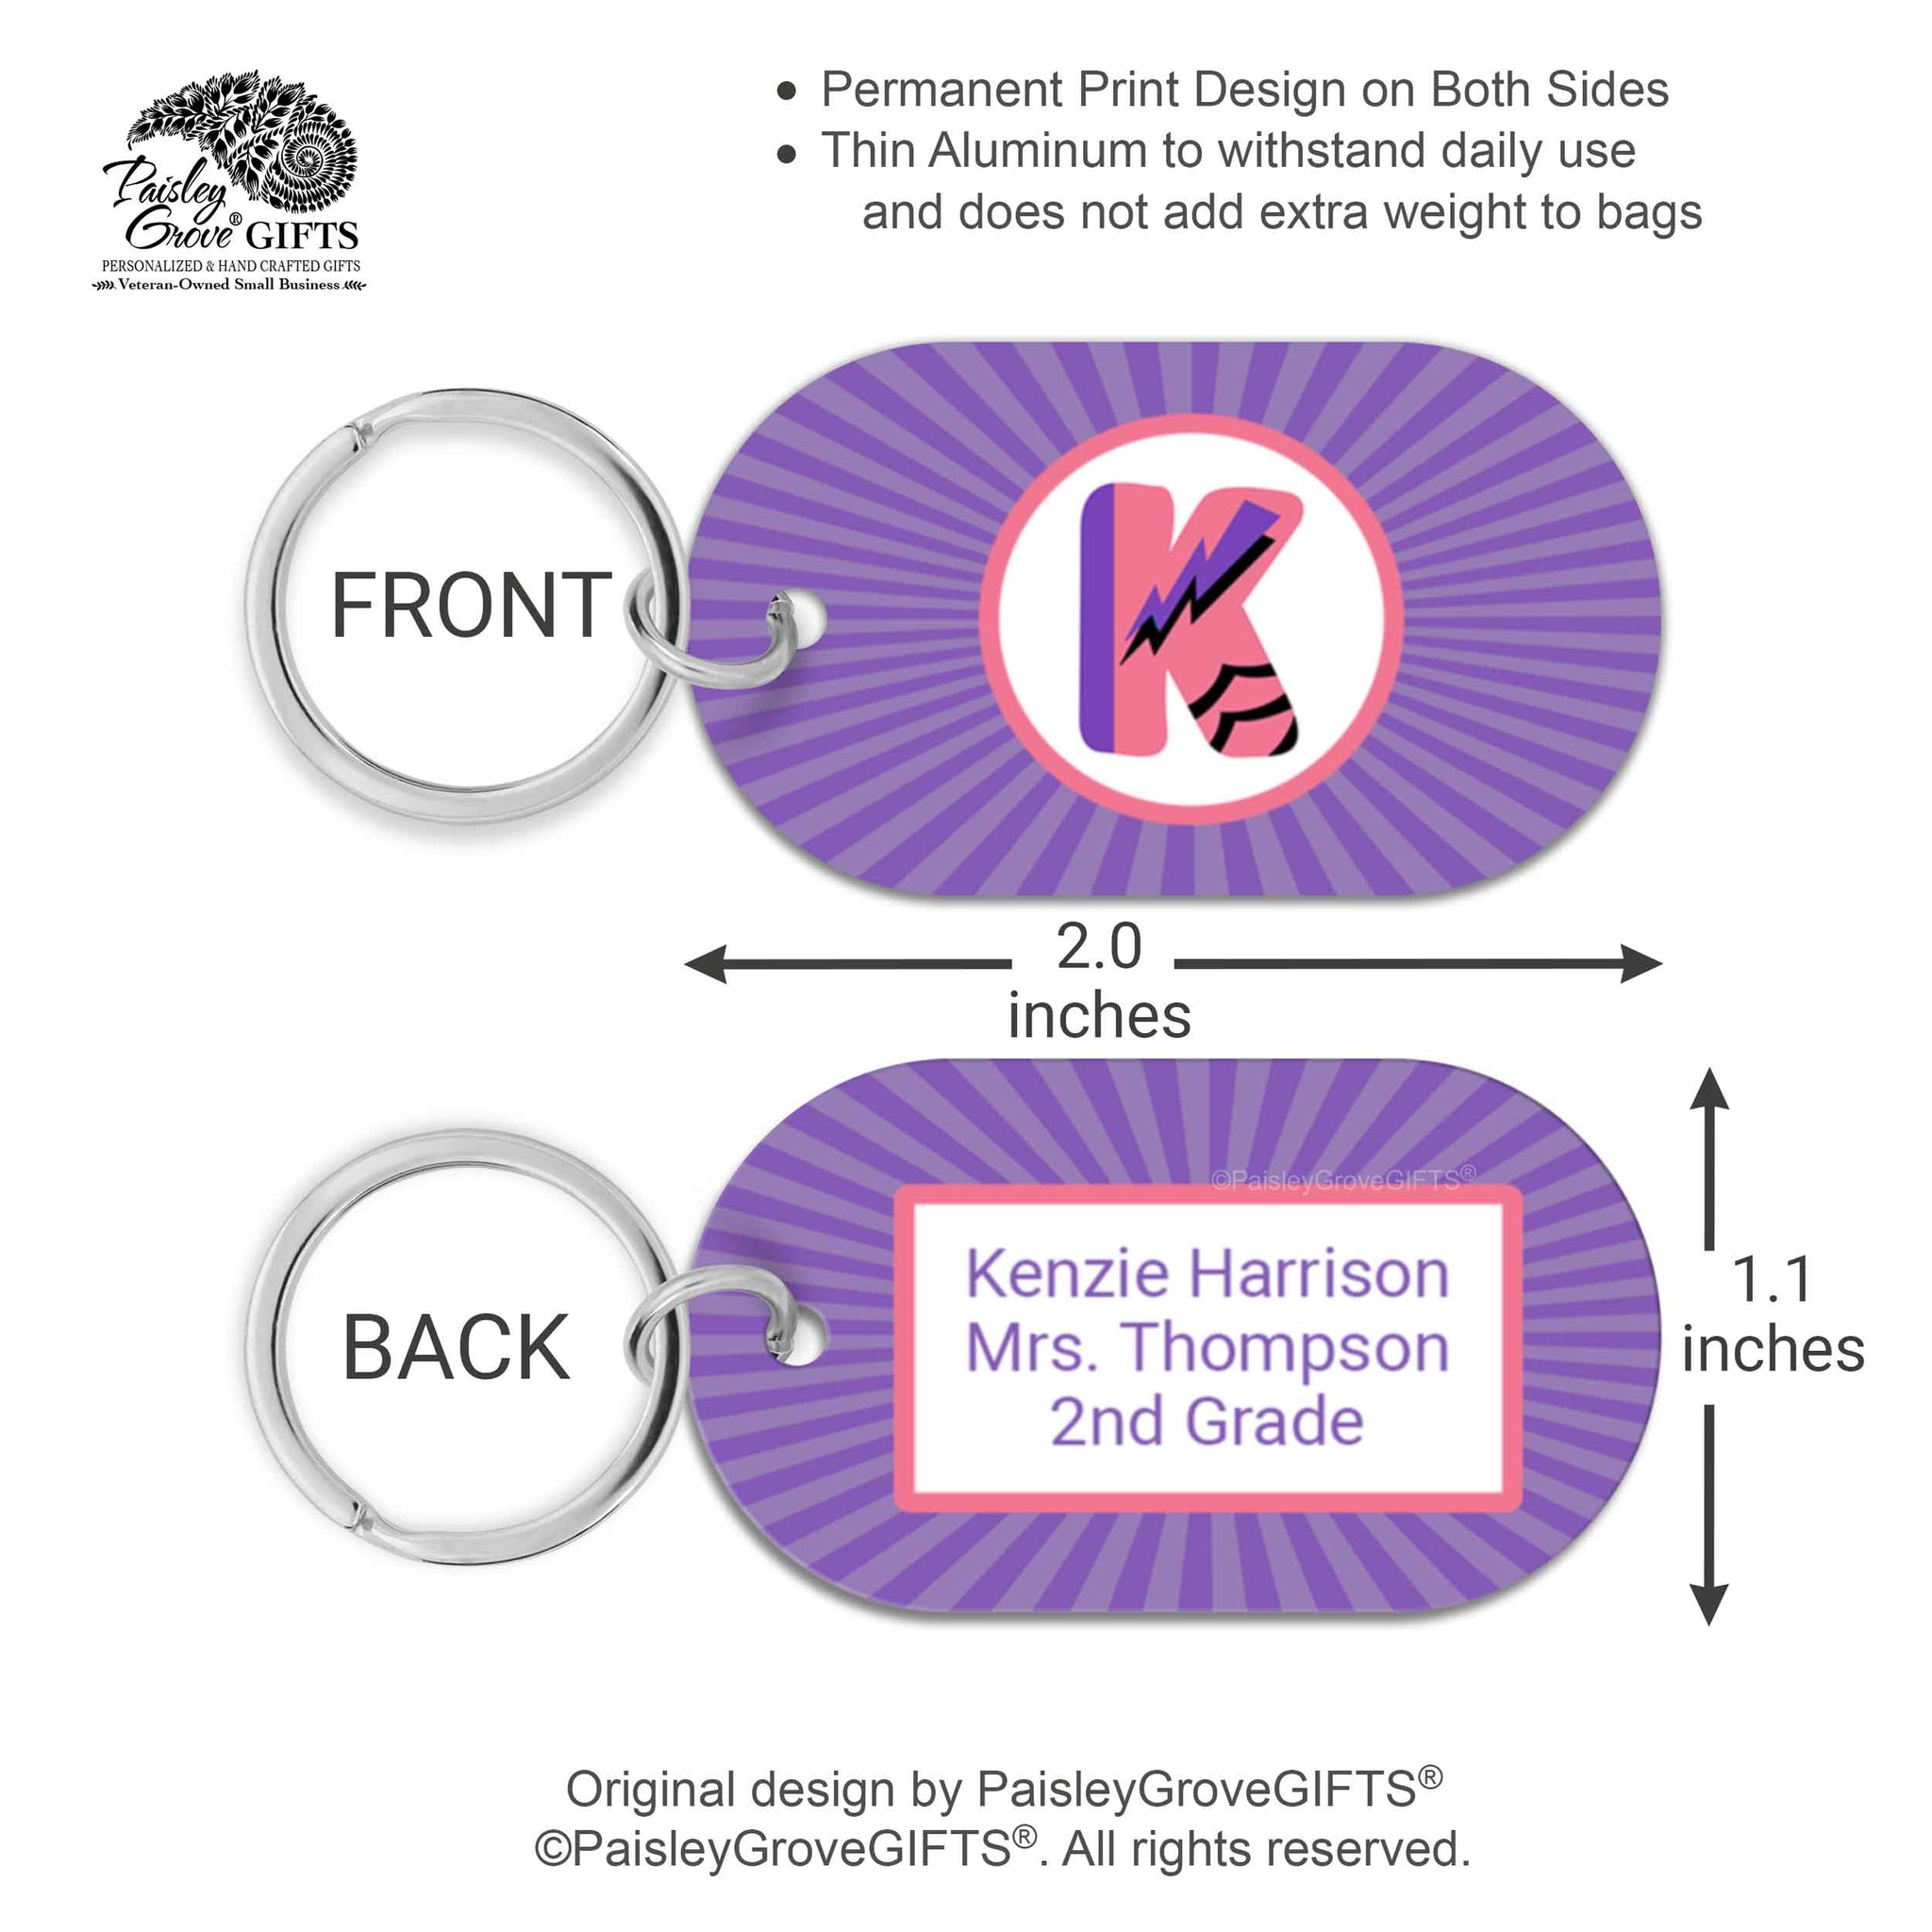 CopyrightPaisleyGroveGIFTS S070b4 Custom bag identification labels for kids school bags measurements